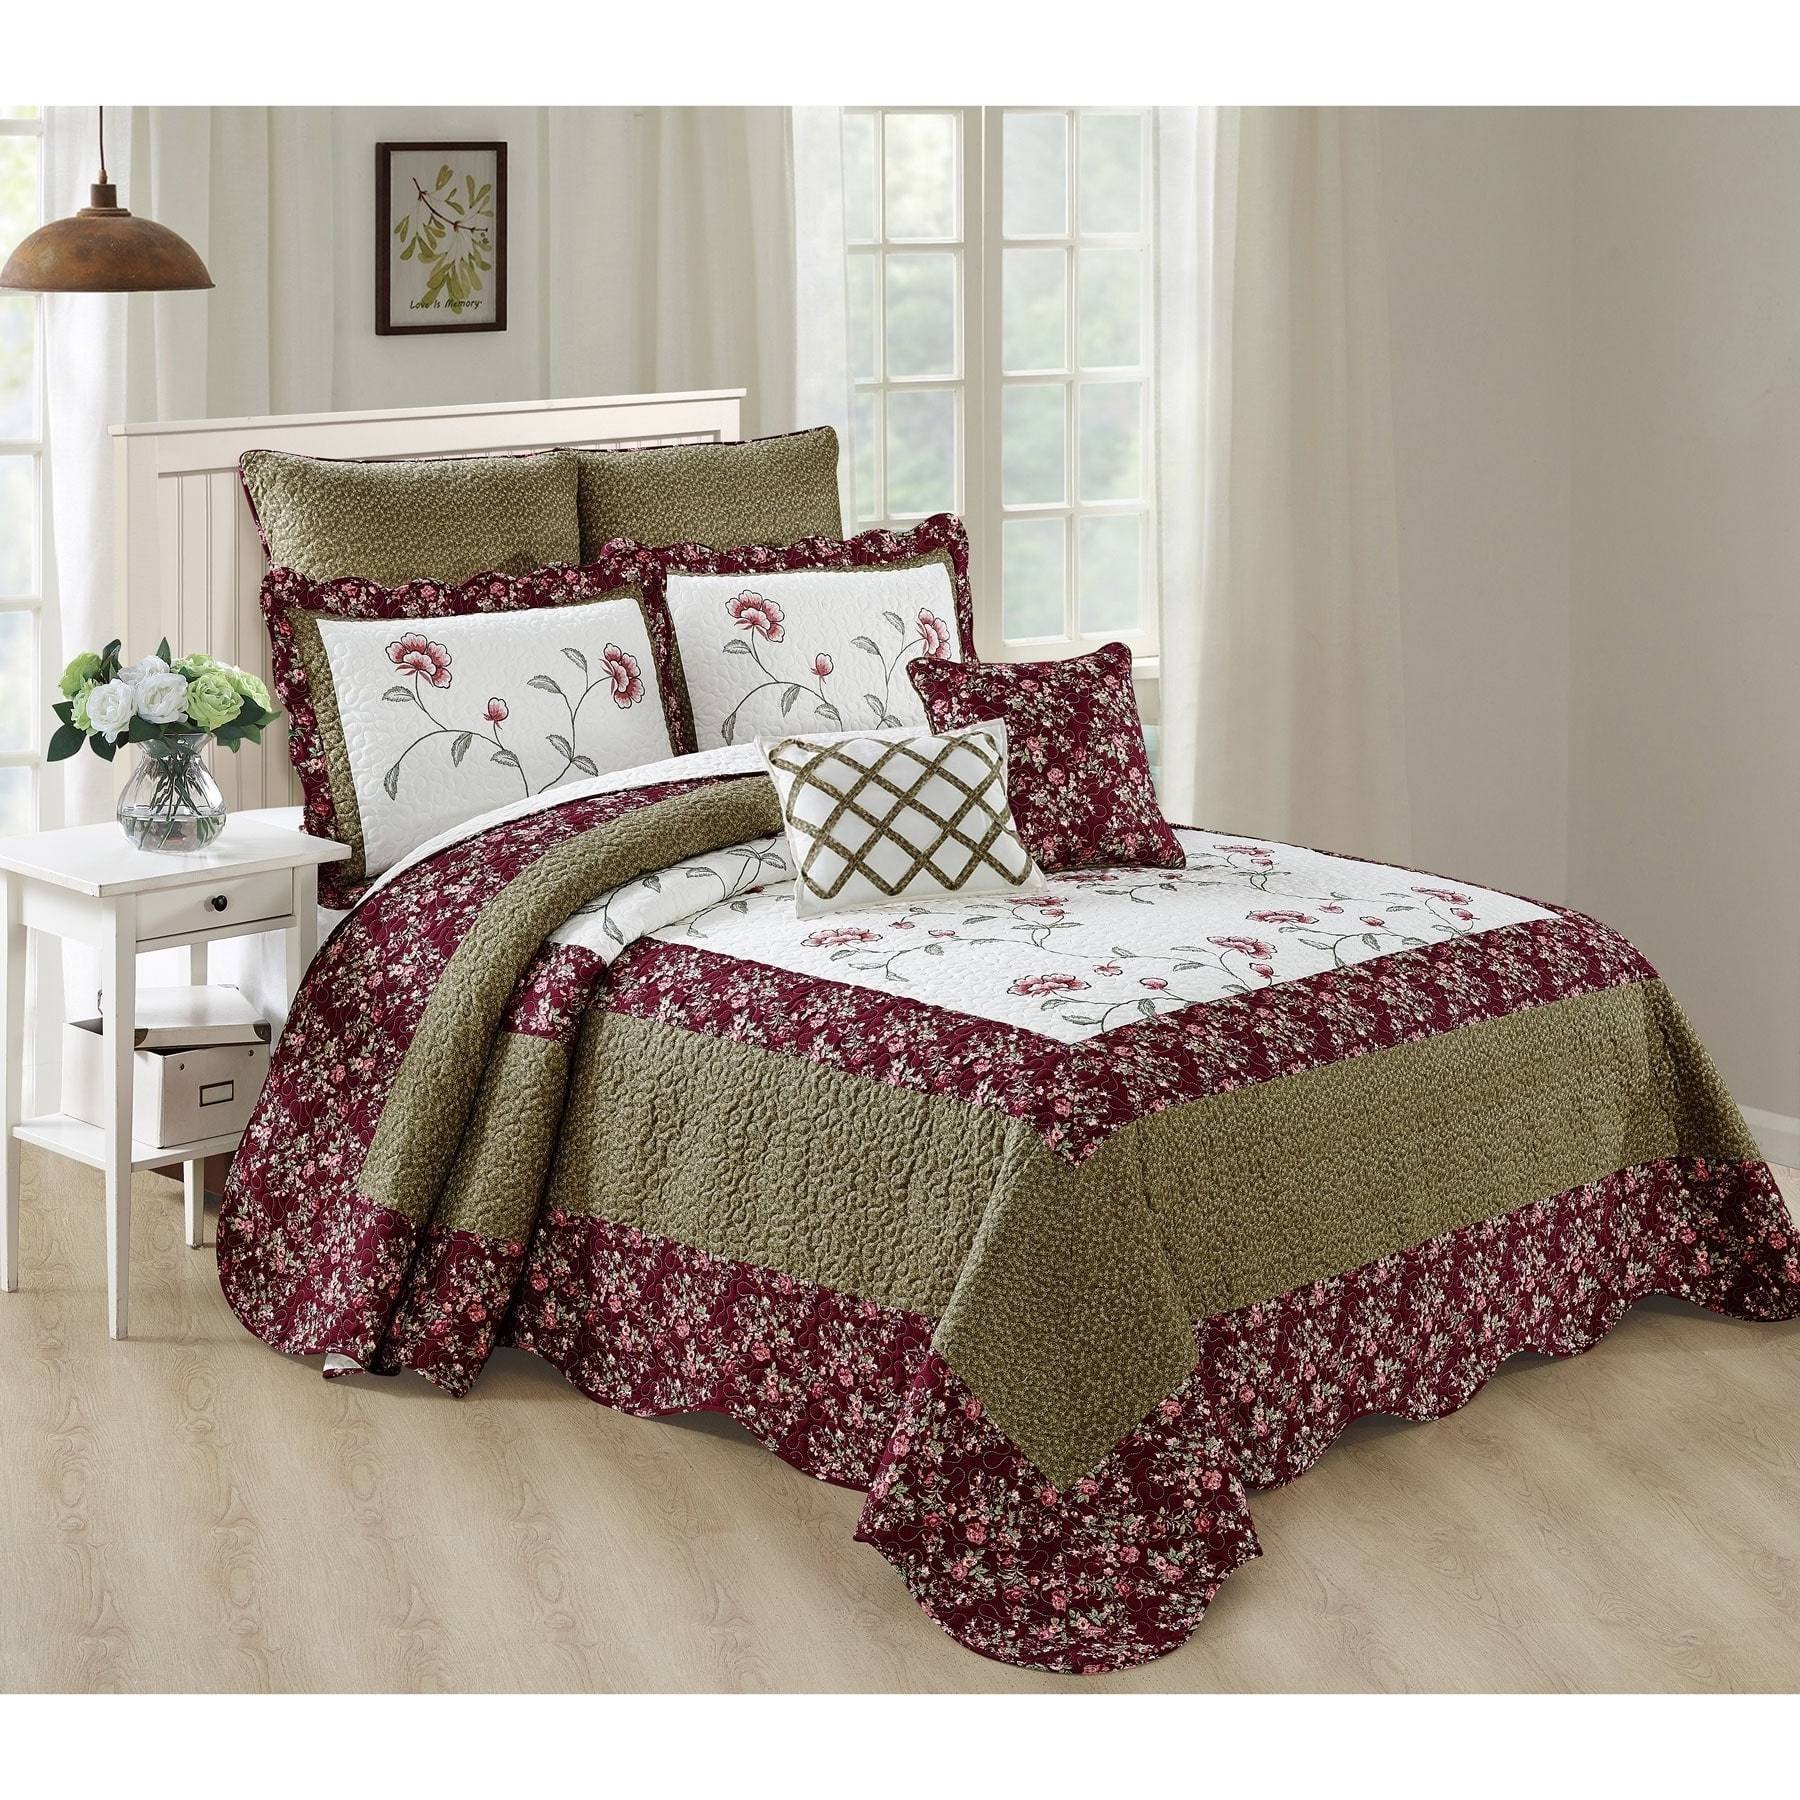 7 Piece Plum Green White King Bedspread Set, Floral Pattern Themed Bedding Flower Garden Antique Vintage Stylish Boho Bohemian Shabby Chic Country Scalloped, Polyester